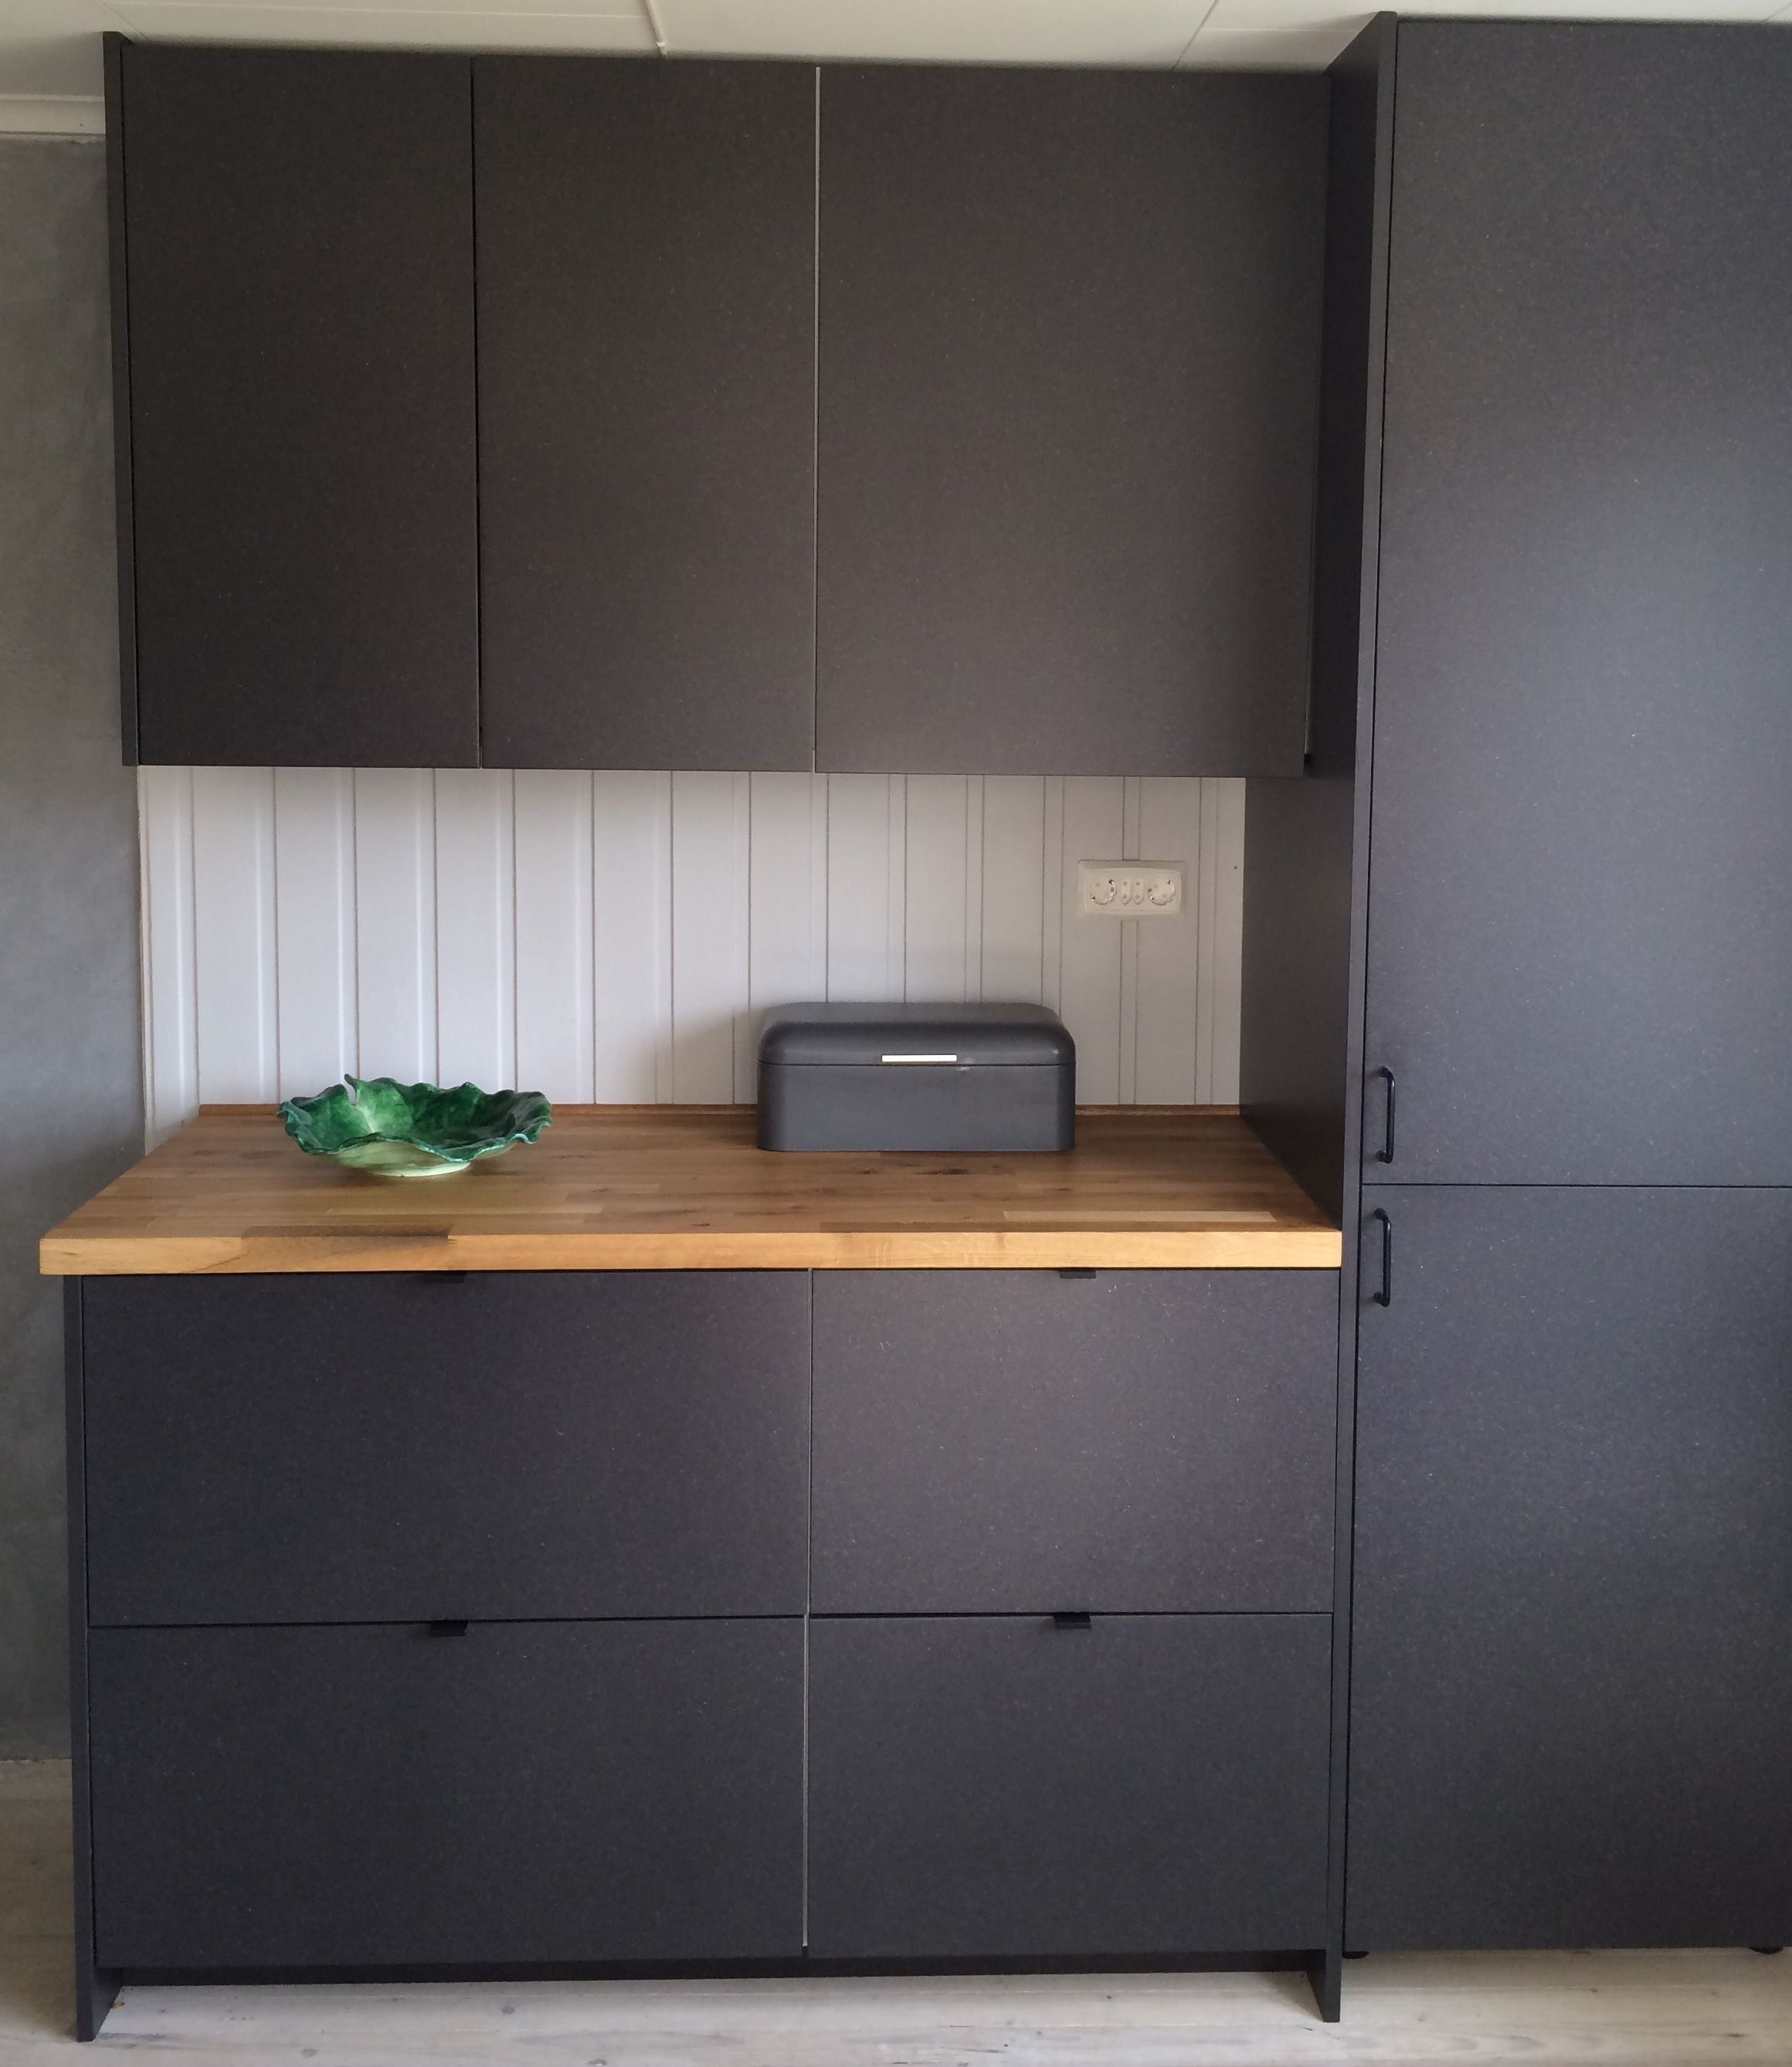 Cheap Studio Apartments Reno: Valchromat IKEA Kitchen Studio10 In 2019